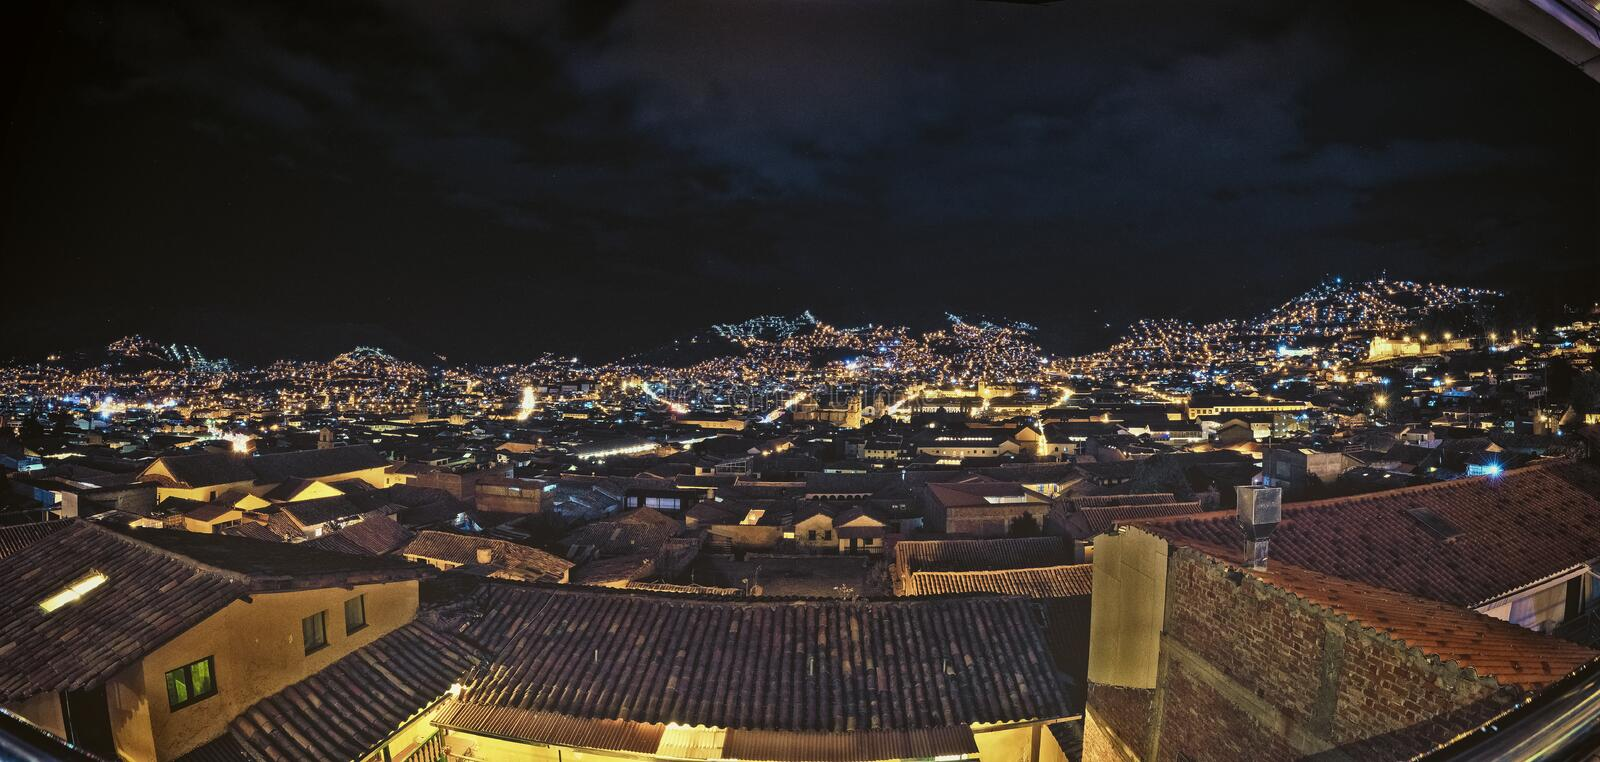 The night view of downtown area of Cusco, Peru. With countless street lights on the hill. Very beautiful and stunning. stock photo